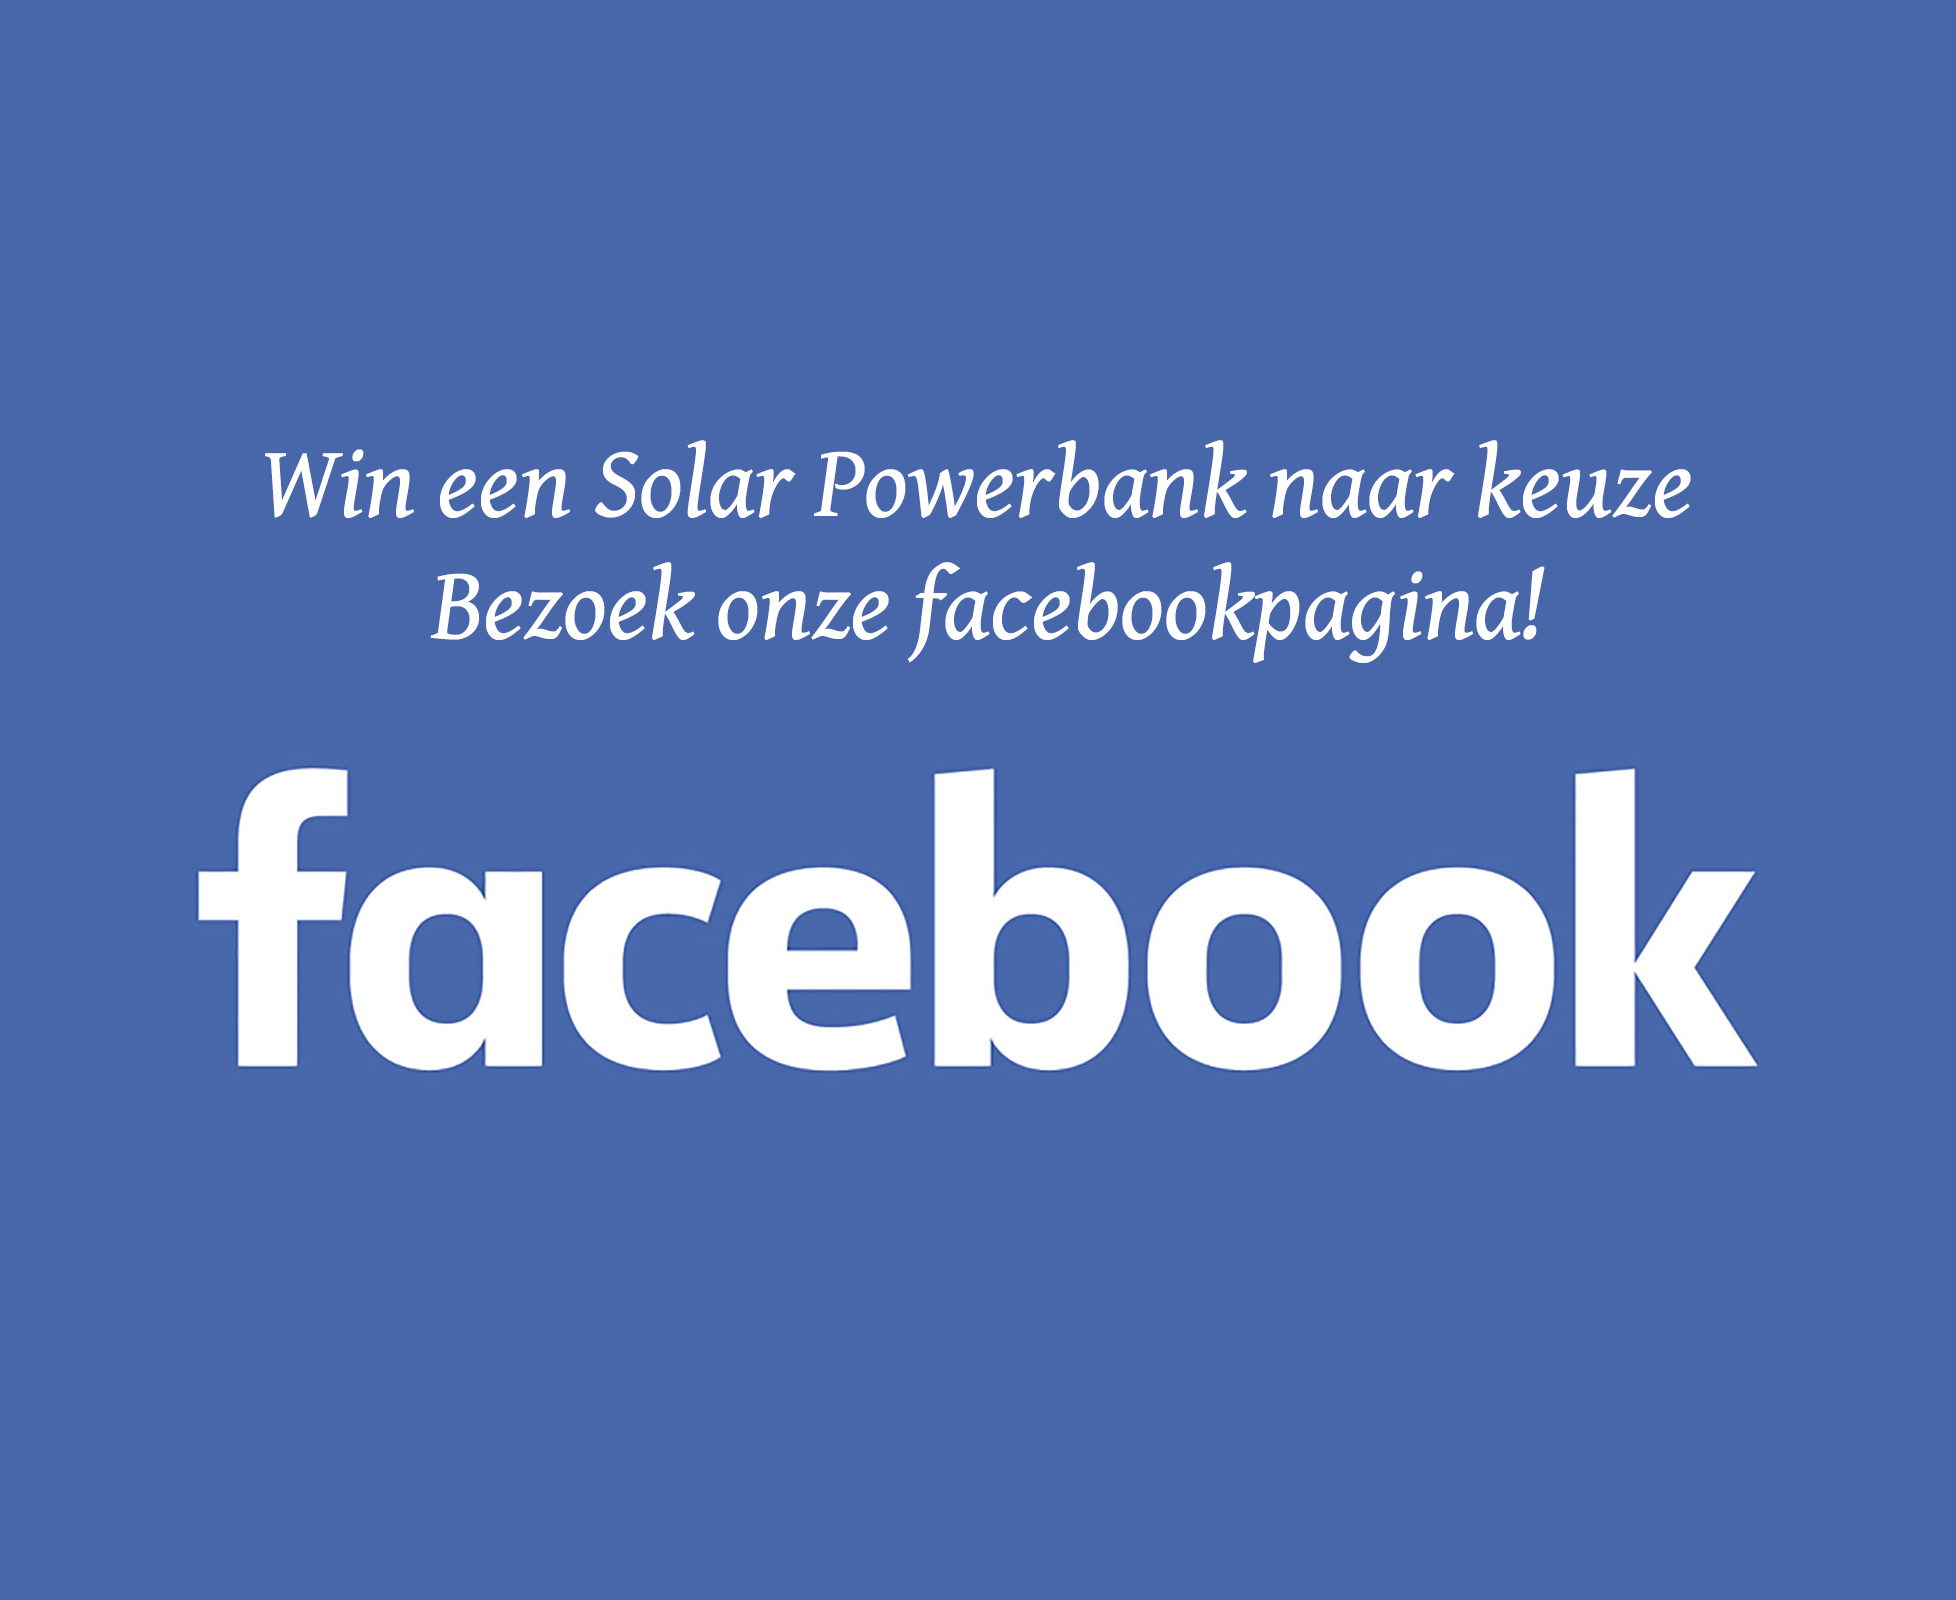 Win een Solar Powerbank! Like onze Facebookpagina :)